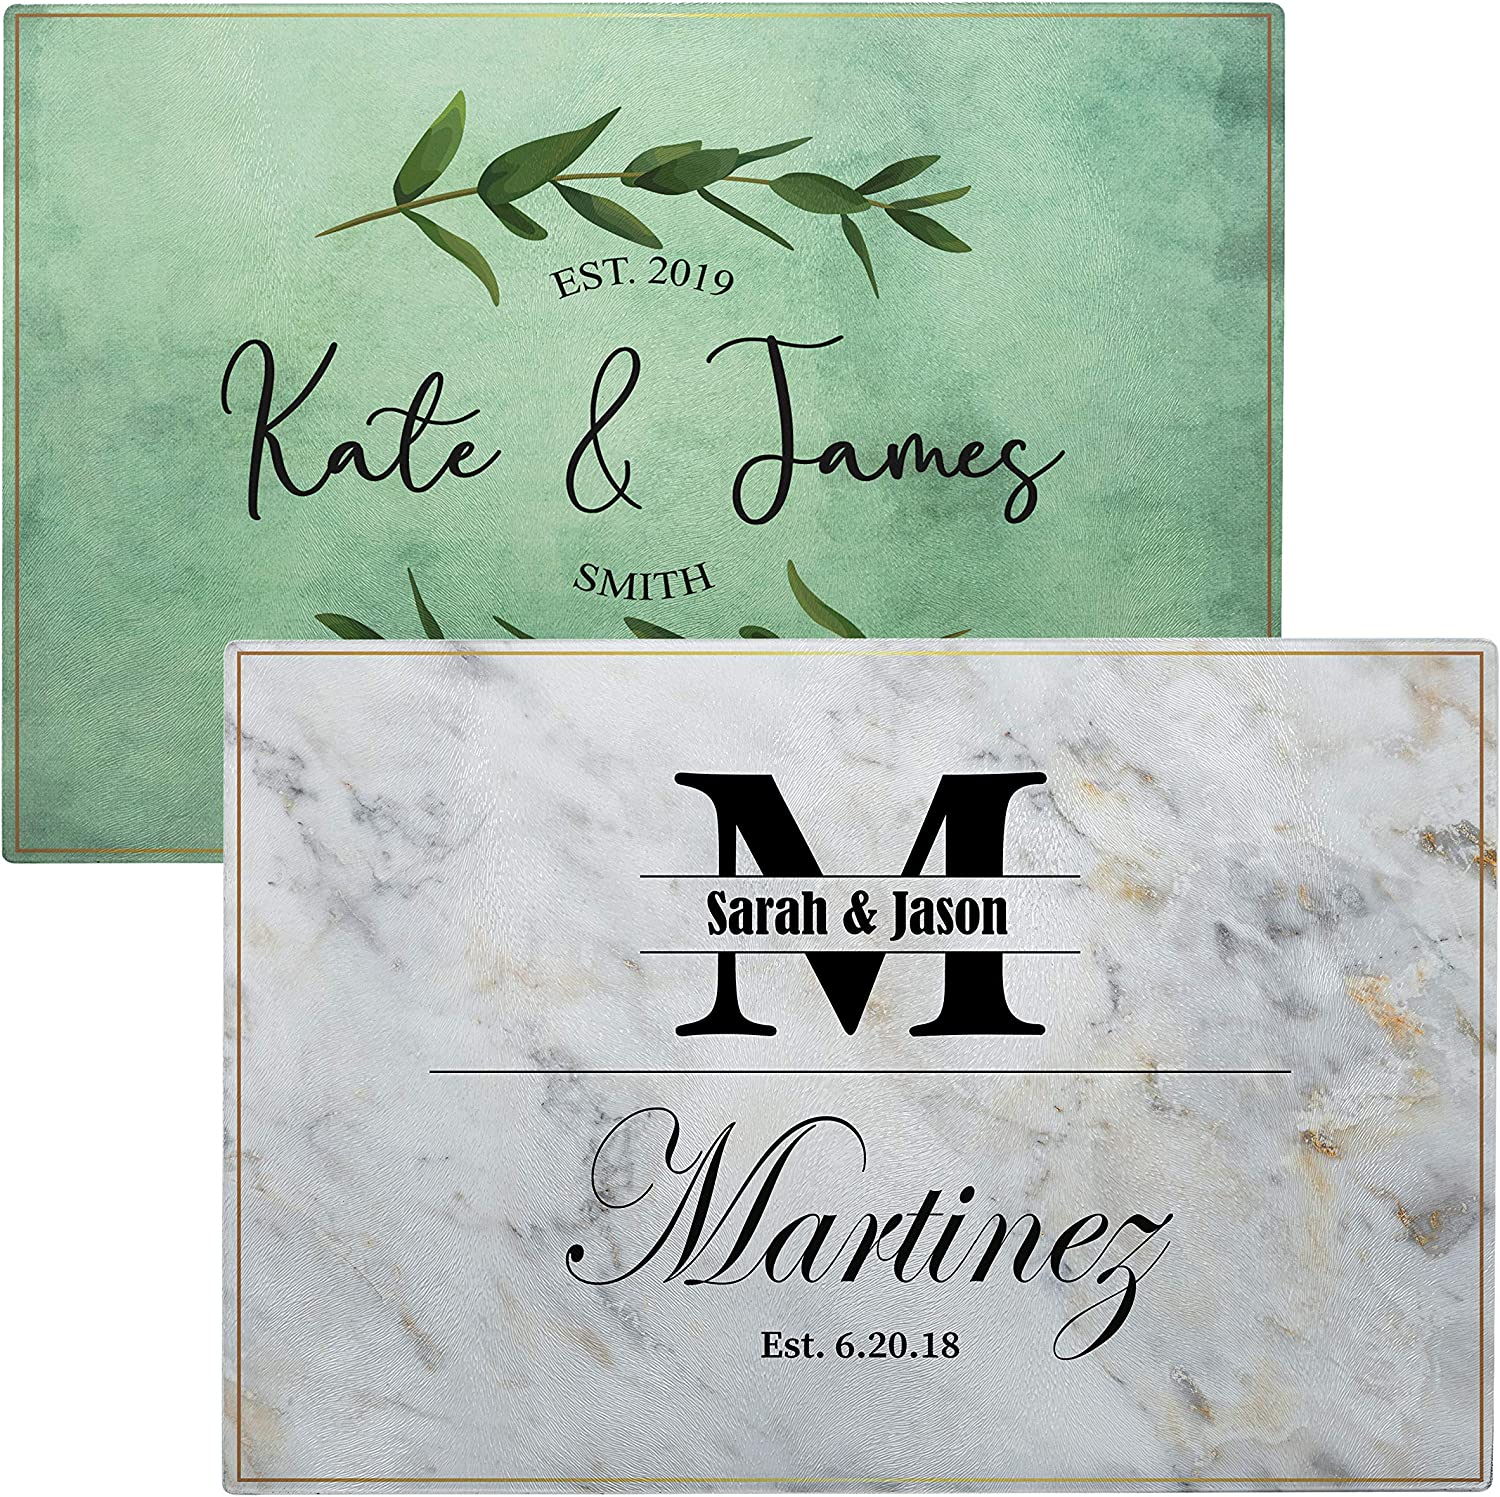 Personalized Glass Cutting Board Tempered Glass Cutting Board 12 Designs 11x8 Housewarming Gifts Personalized Wedding Gifts For Couple Custom Cutting Boards For Kitchen Kitchen Sign Kitchen Dining